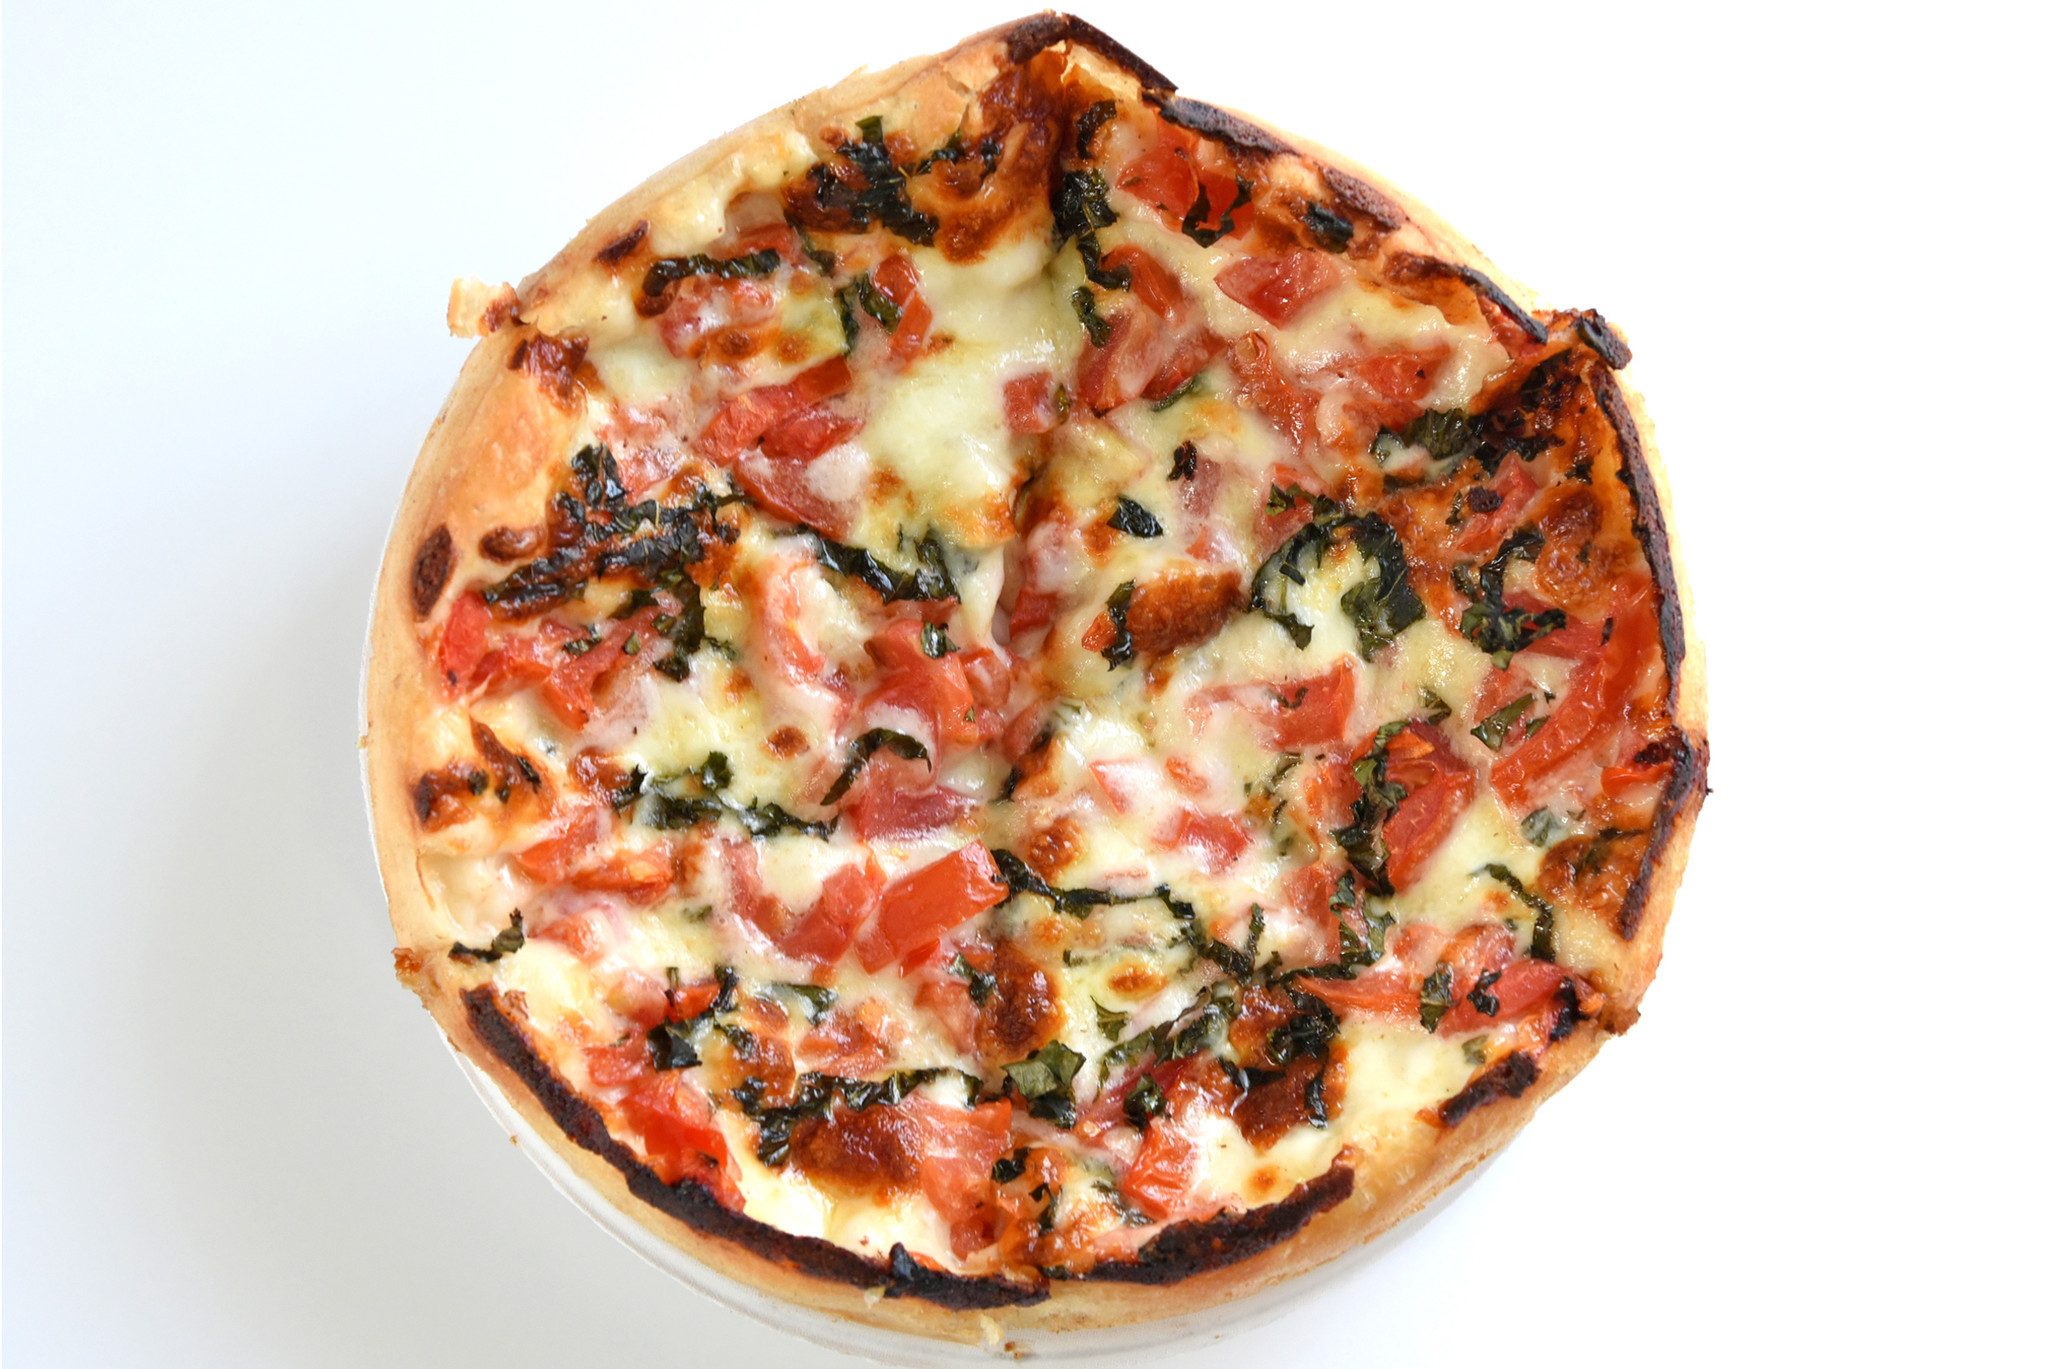 Baltimore, MD-6/28/16- The Margherita pizza, at Matthew's Pizza in Highlandtown. (For Dining Guide f